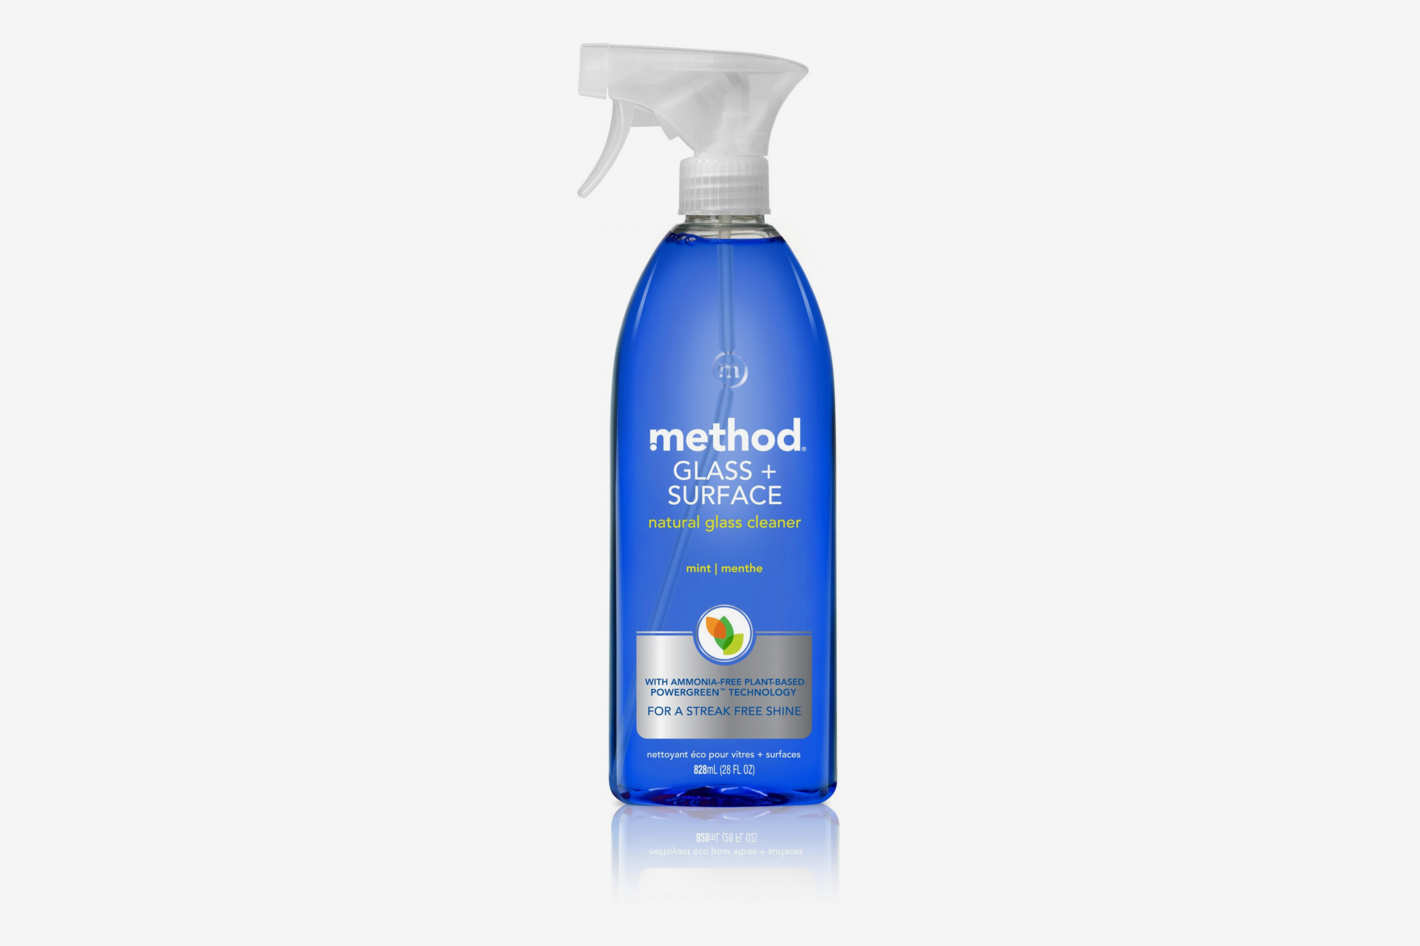 Method Glass + Surface Cleaner Spray, Mint, 28 Oz